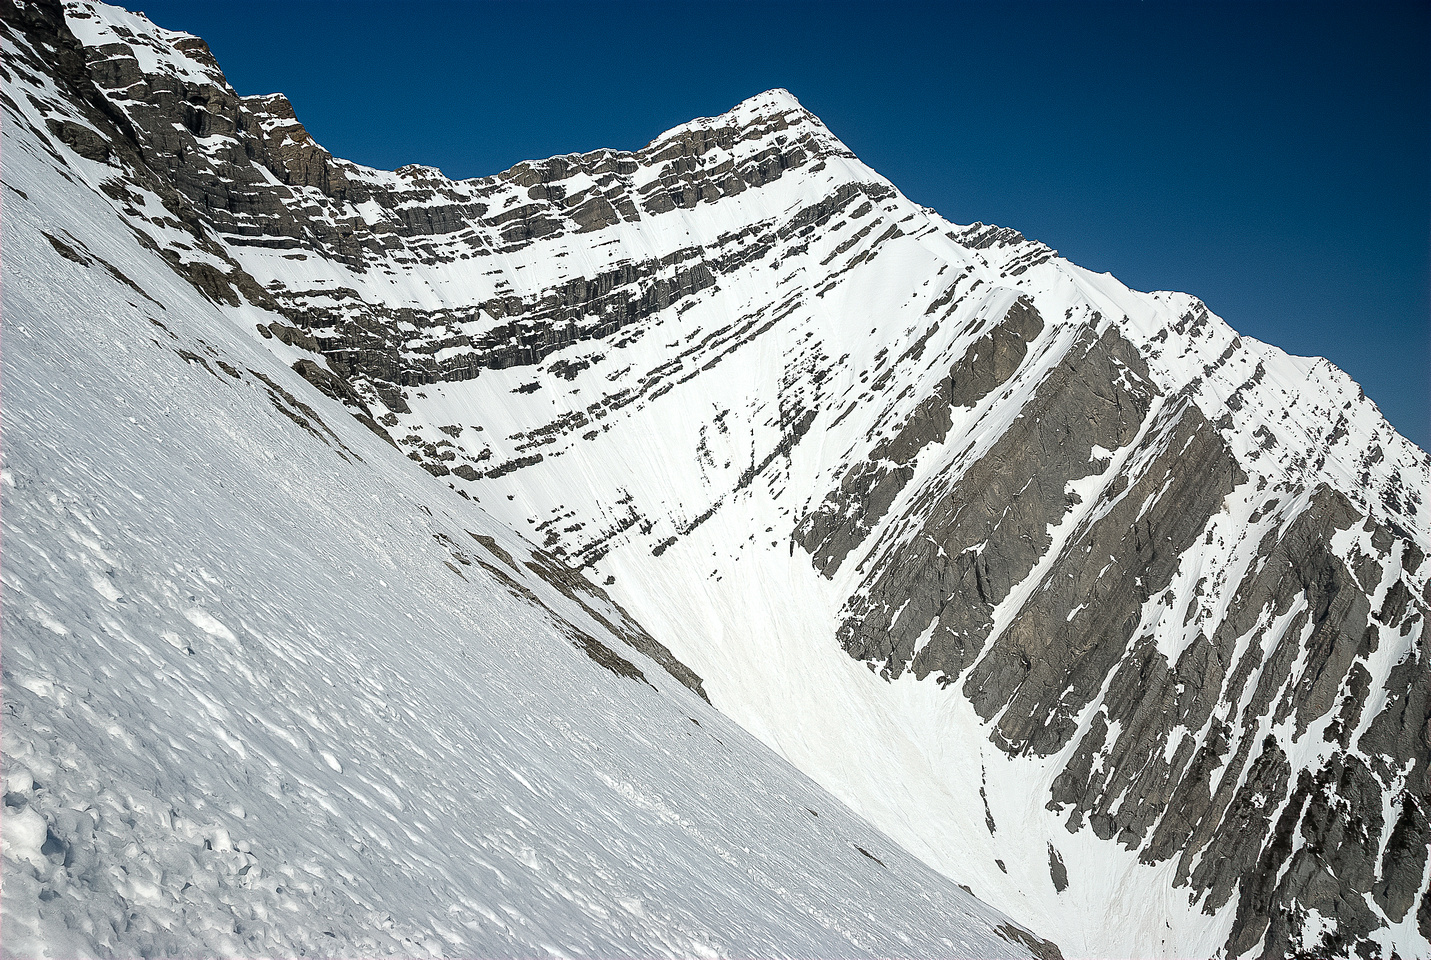 Mount Inflexible from the steep ascent slope.